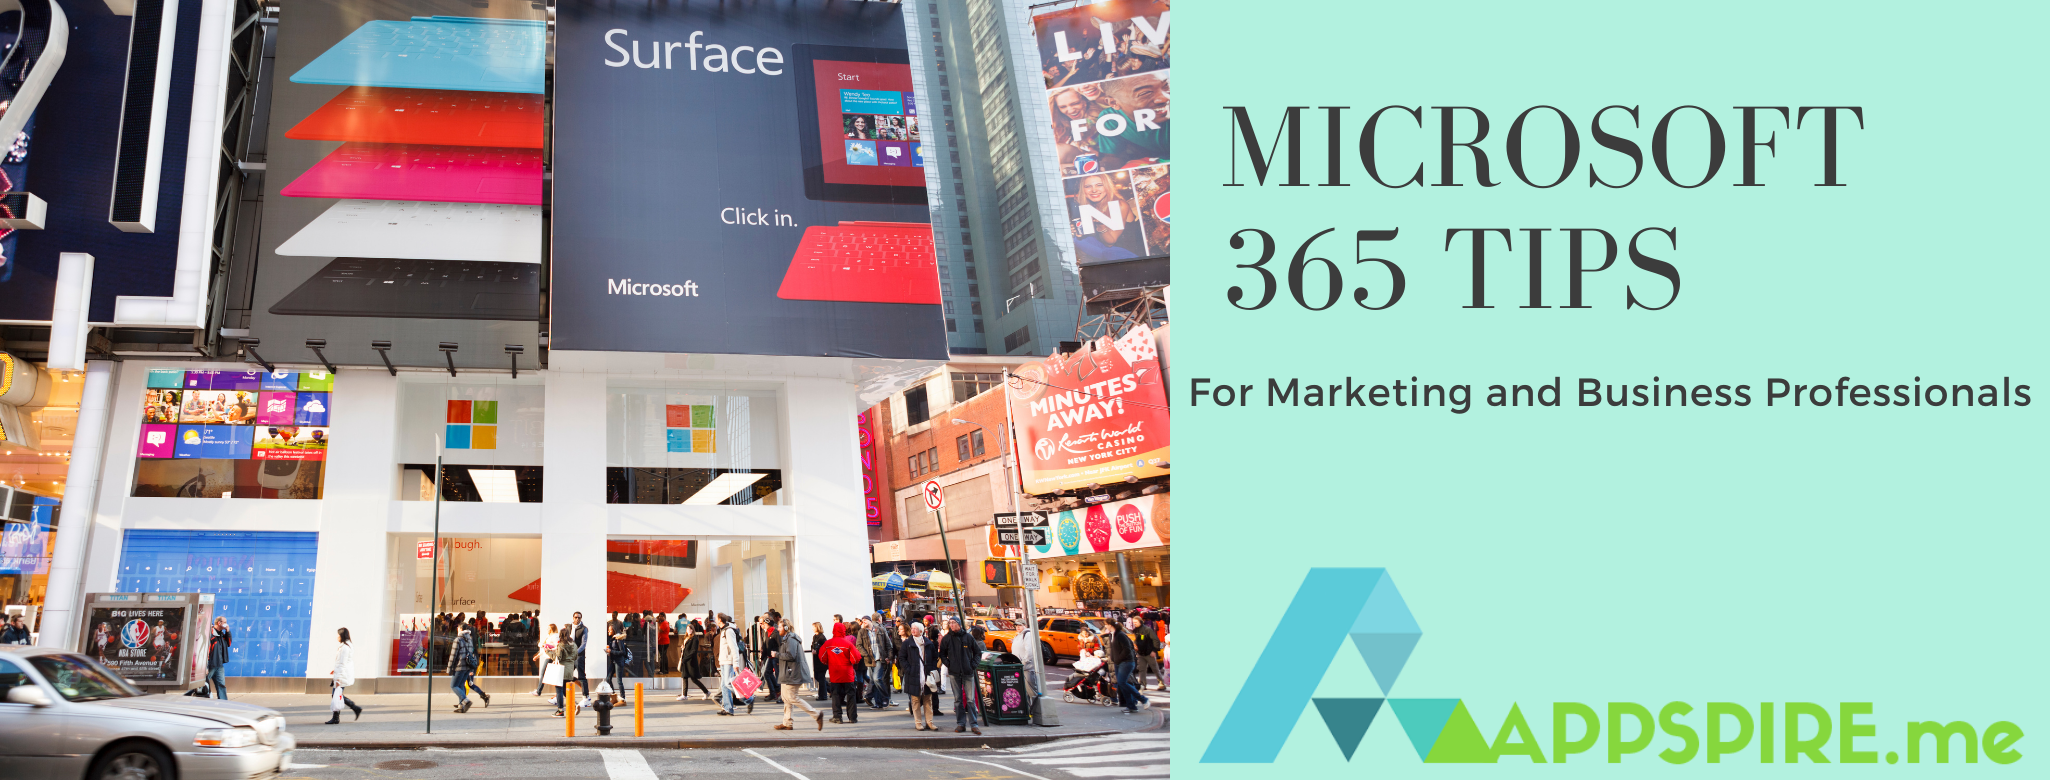 Microsoft 365 Tips for Marketing and Business Professionals